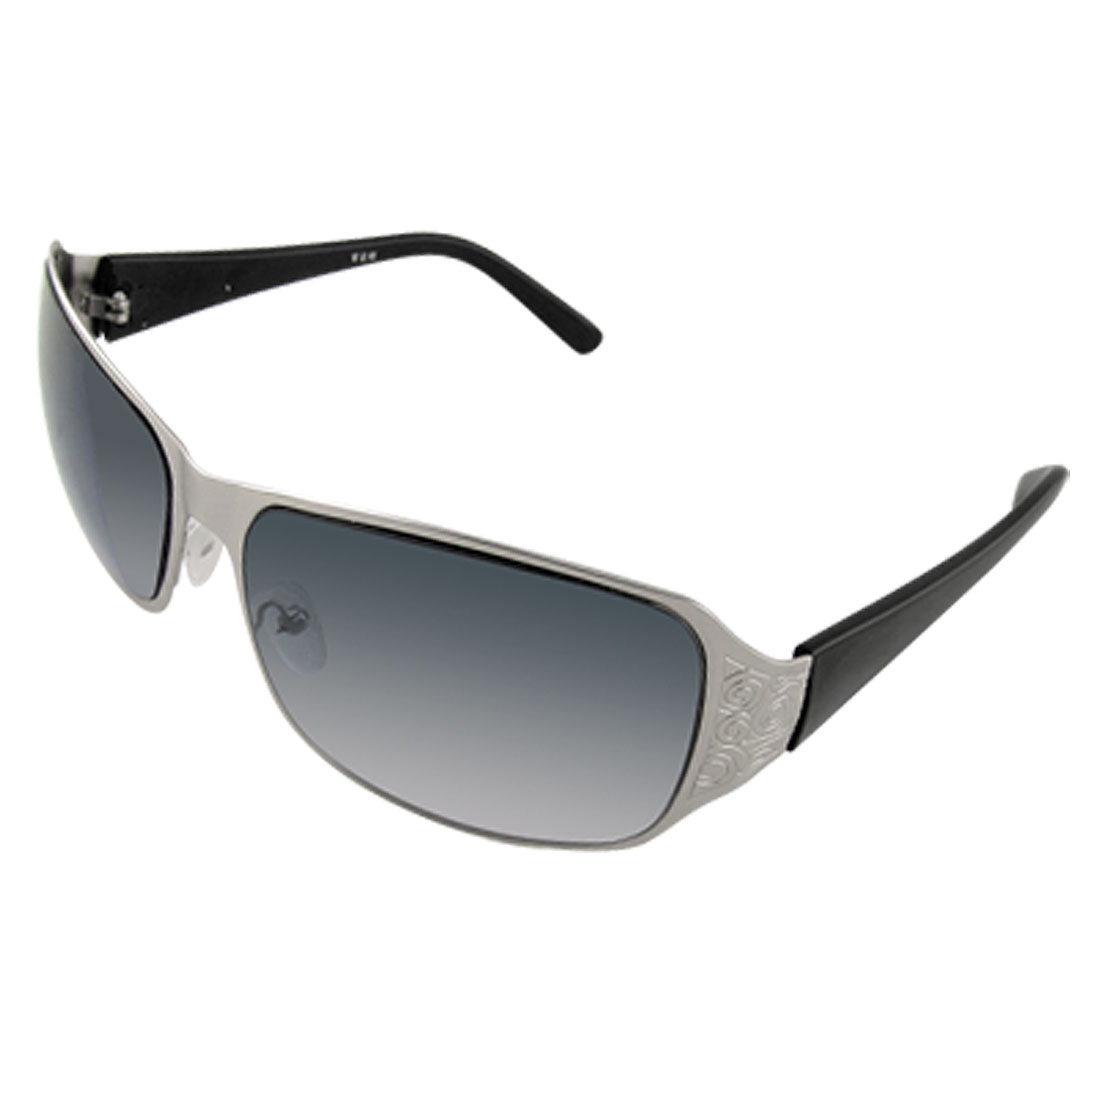 Silver Tone Metal Frame Black Arms Men UV Protection Eyewear